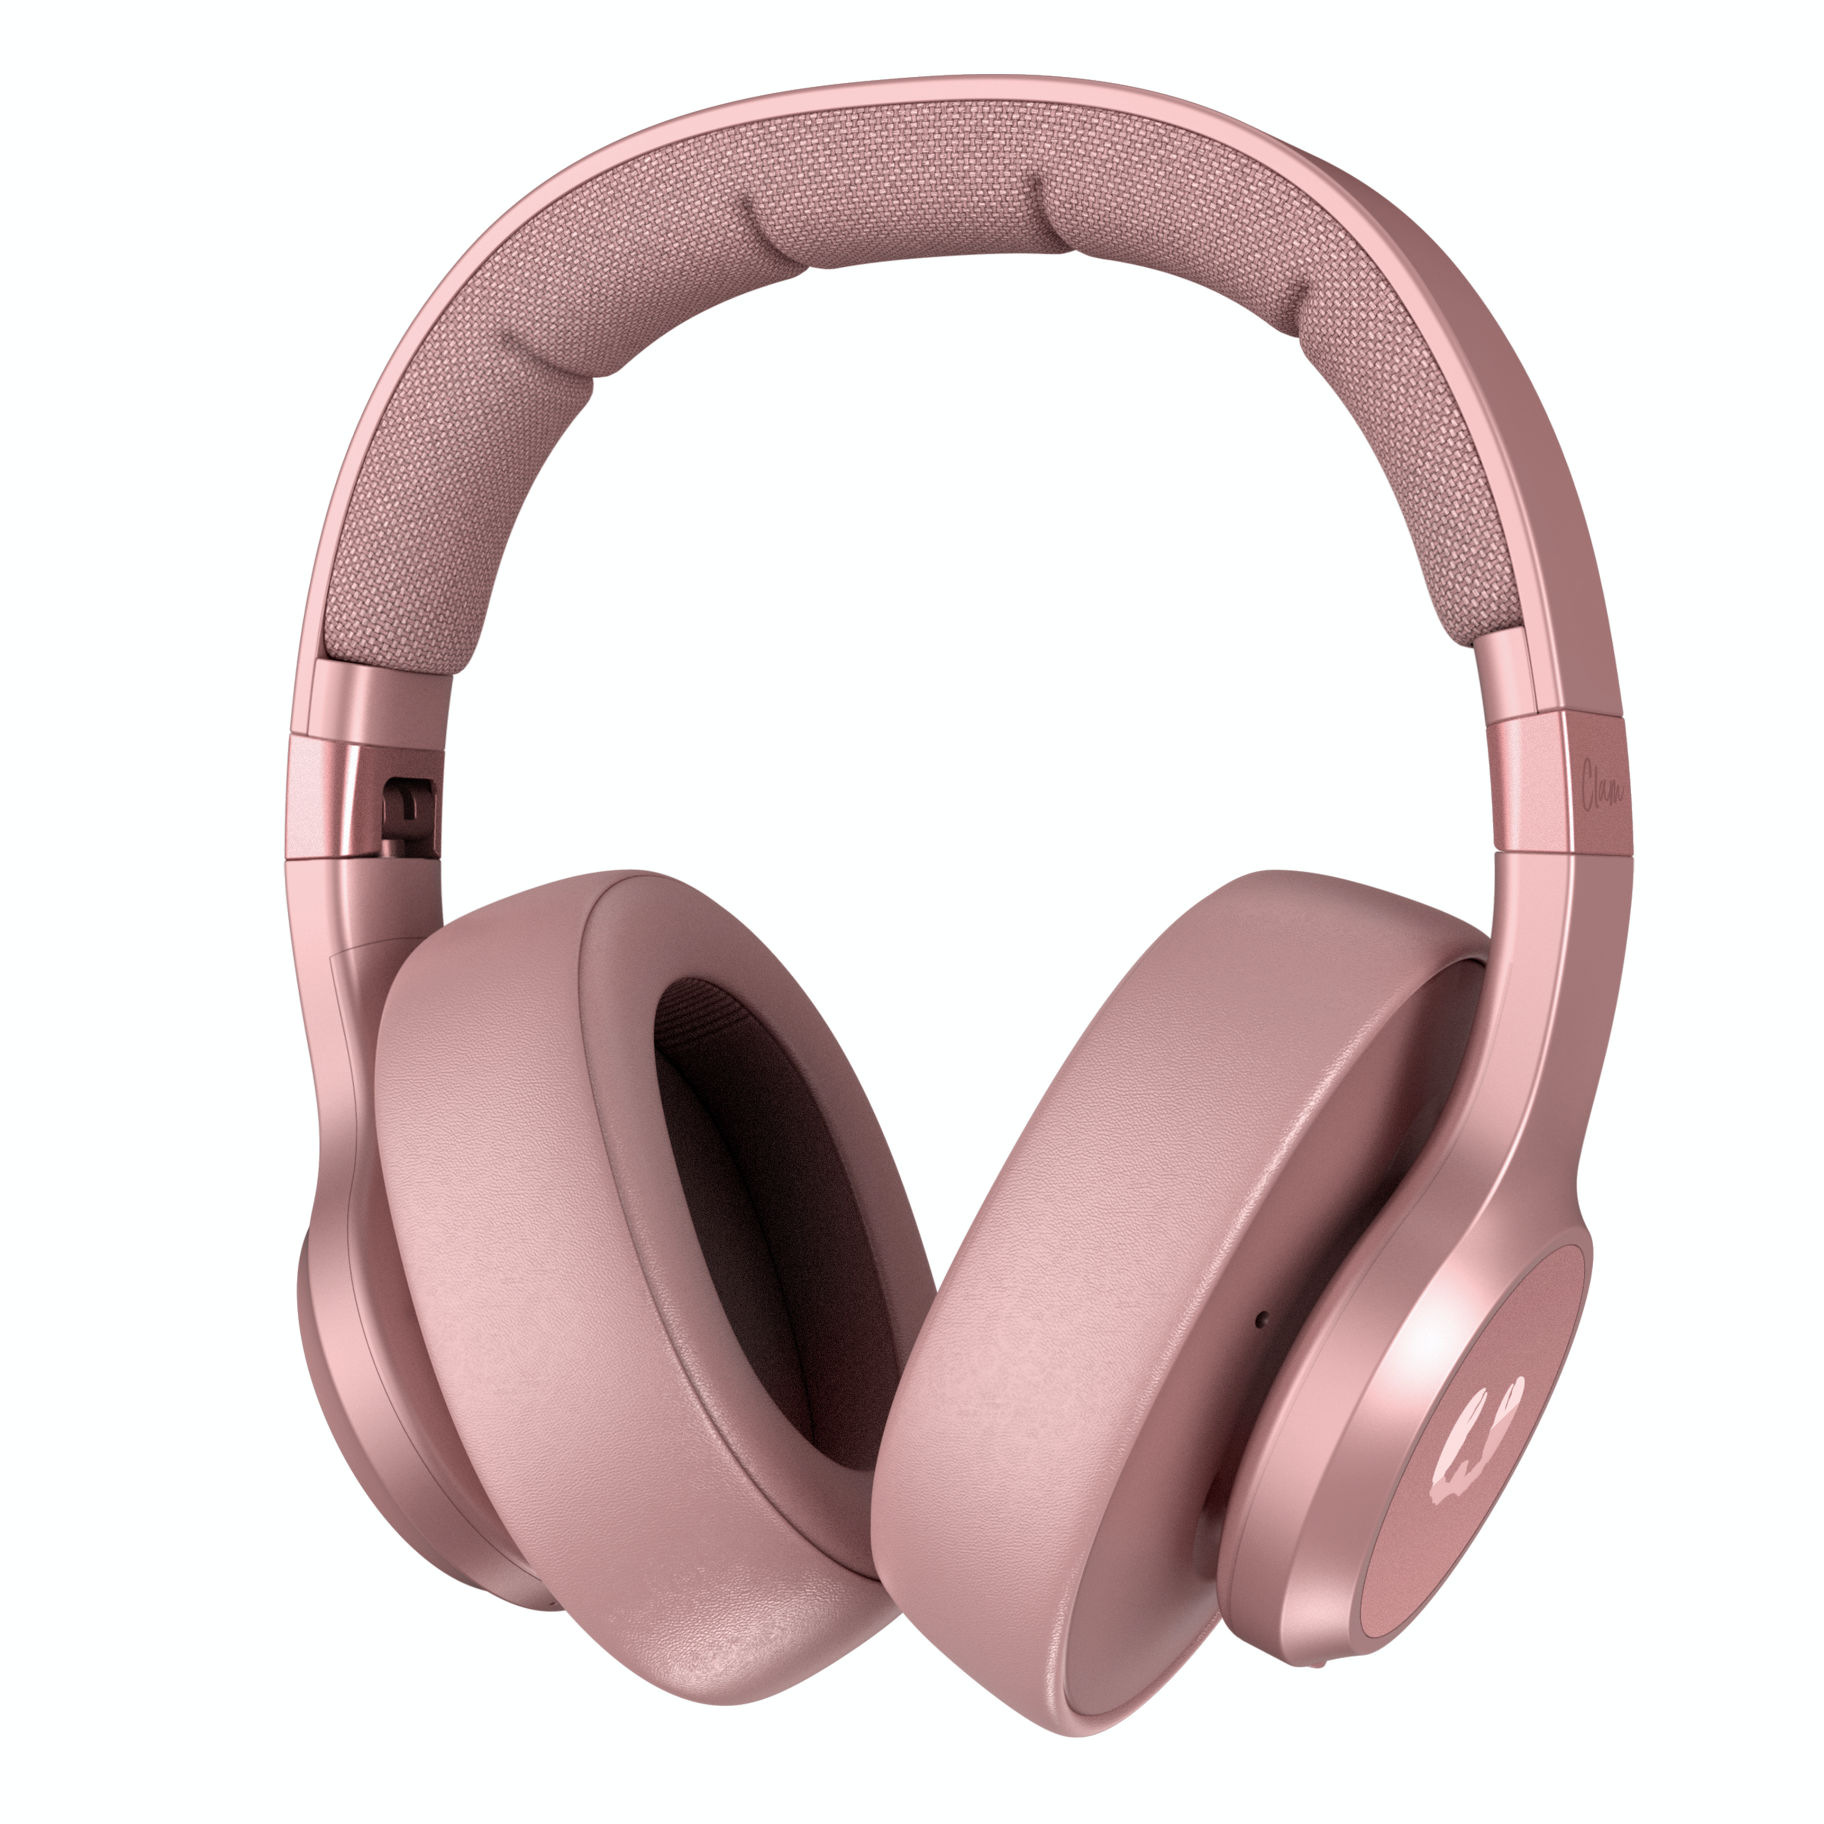 Copy of Clam headphones Fresh 'n Rebel dusty pink